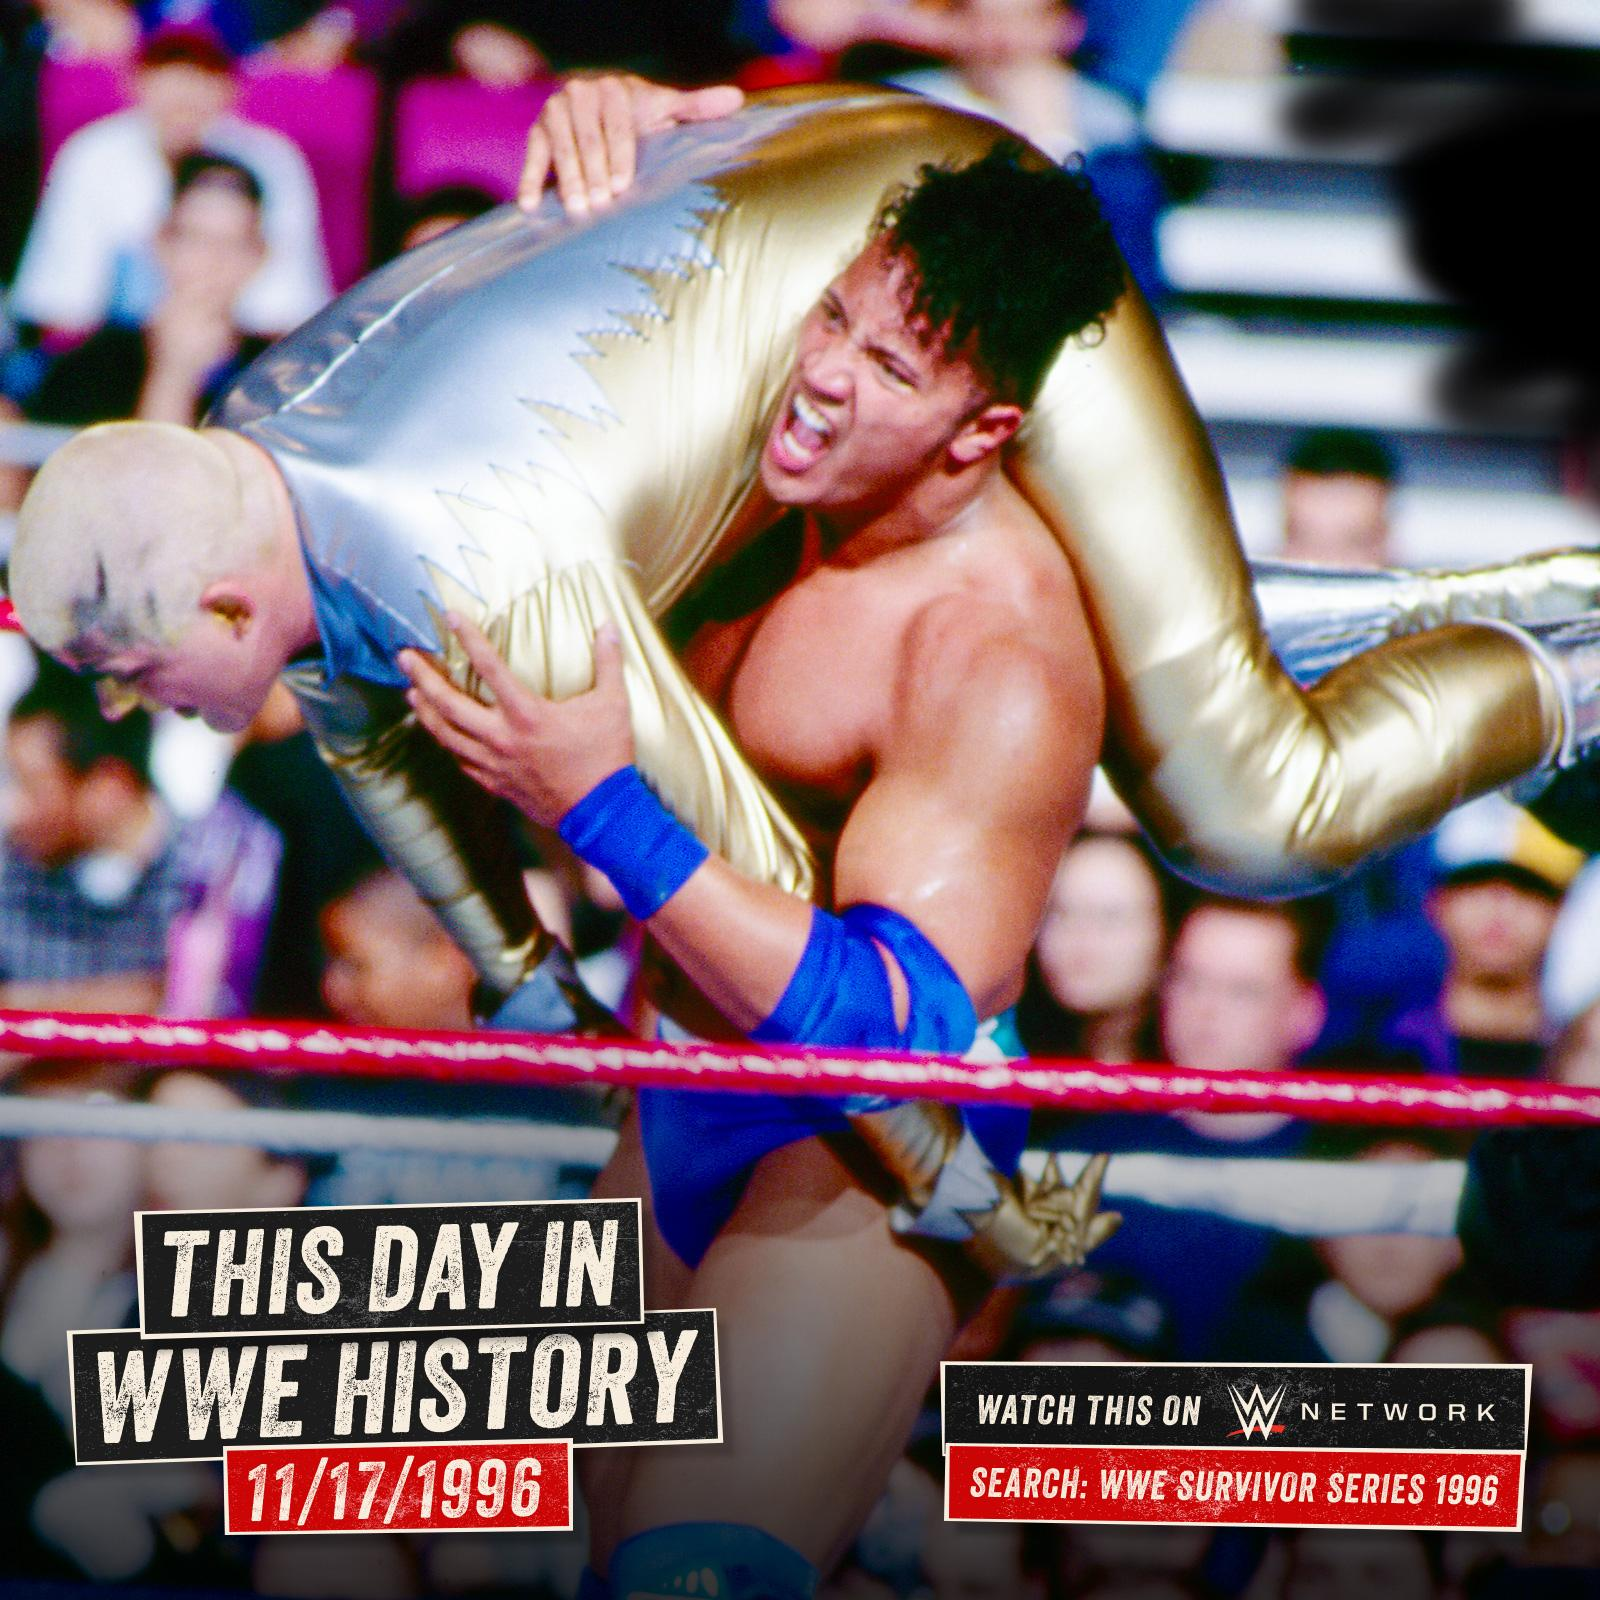 .@TheRock made his @WWE debut on this day in 1996 in @TheGarden at #SurvivorSeries! https://t.co/XuH39XIHQK https://t.co/KK8YRC299I